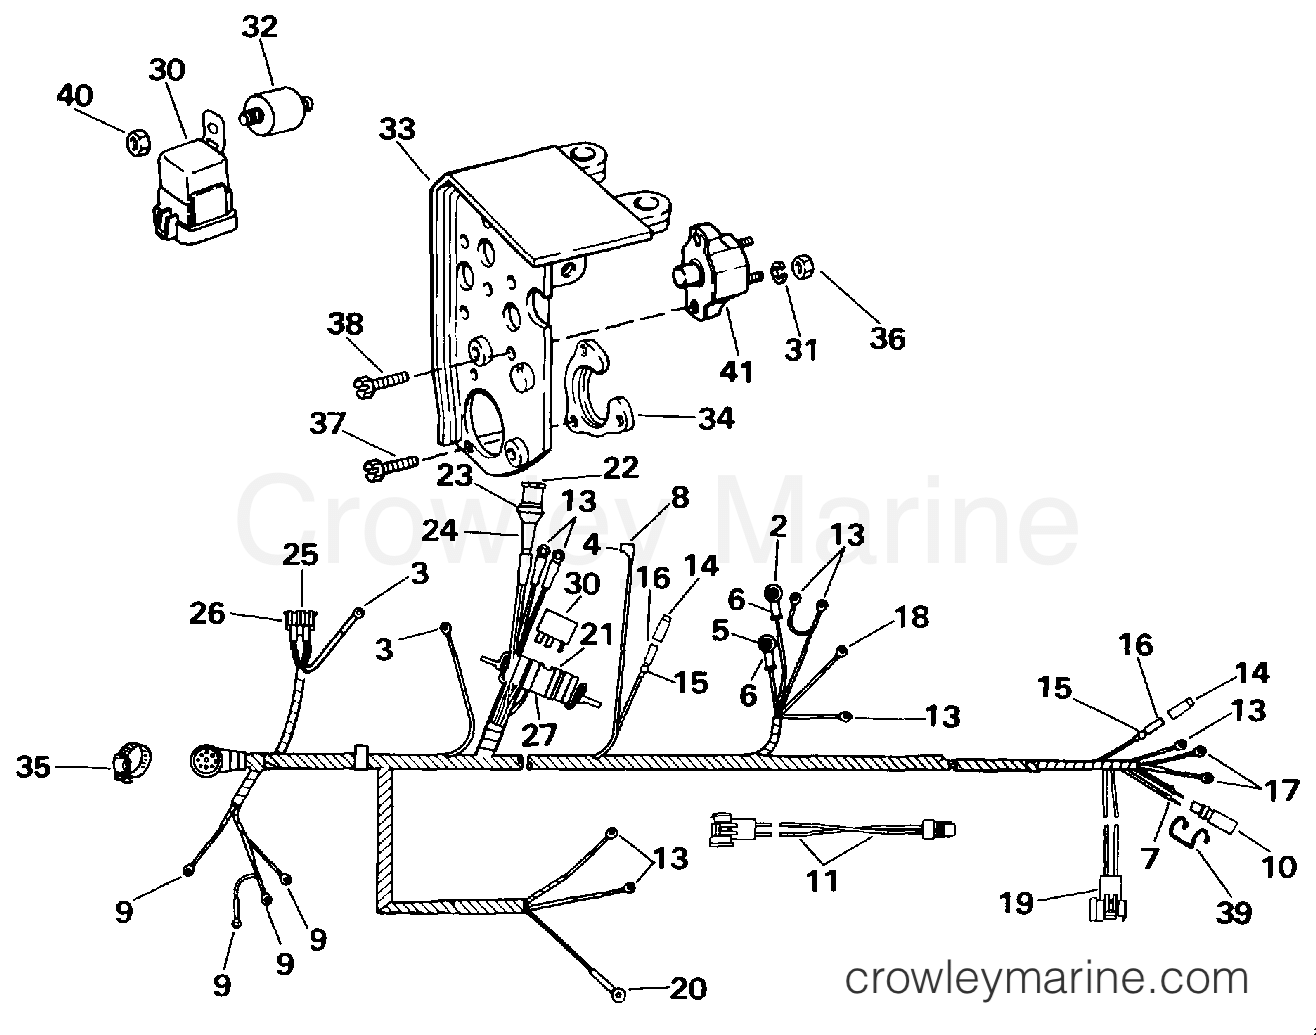 ENGINE WIRE HARNESS & SHIFT MODULE - 1994 OMC Stern Drive 4.3 ... johnson outboard starter solenoid wiring diagram Crowley Marine